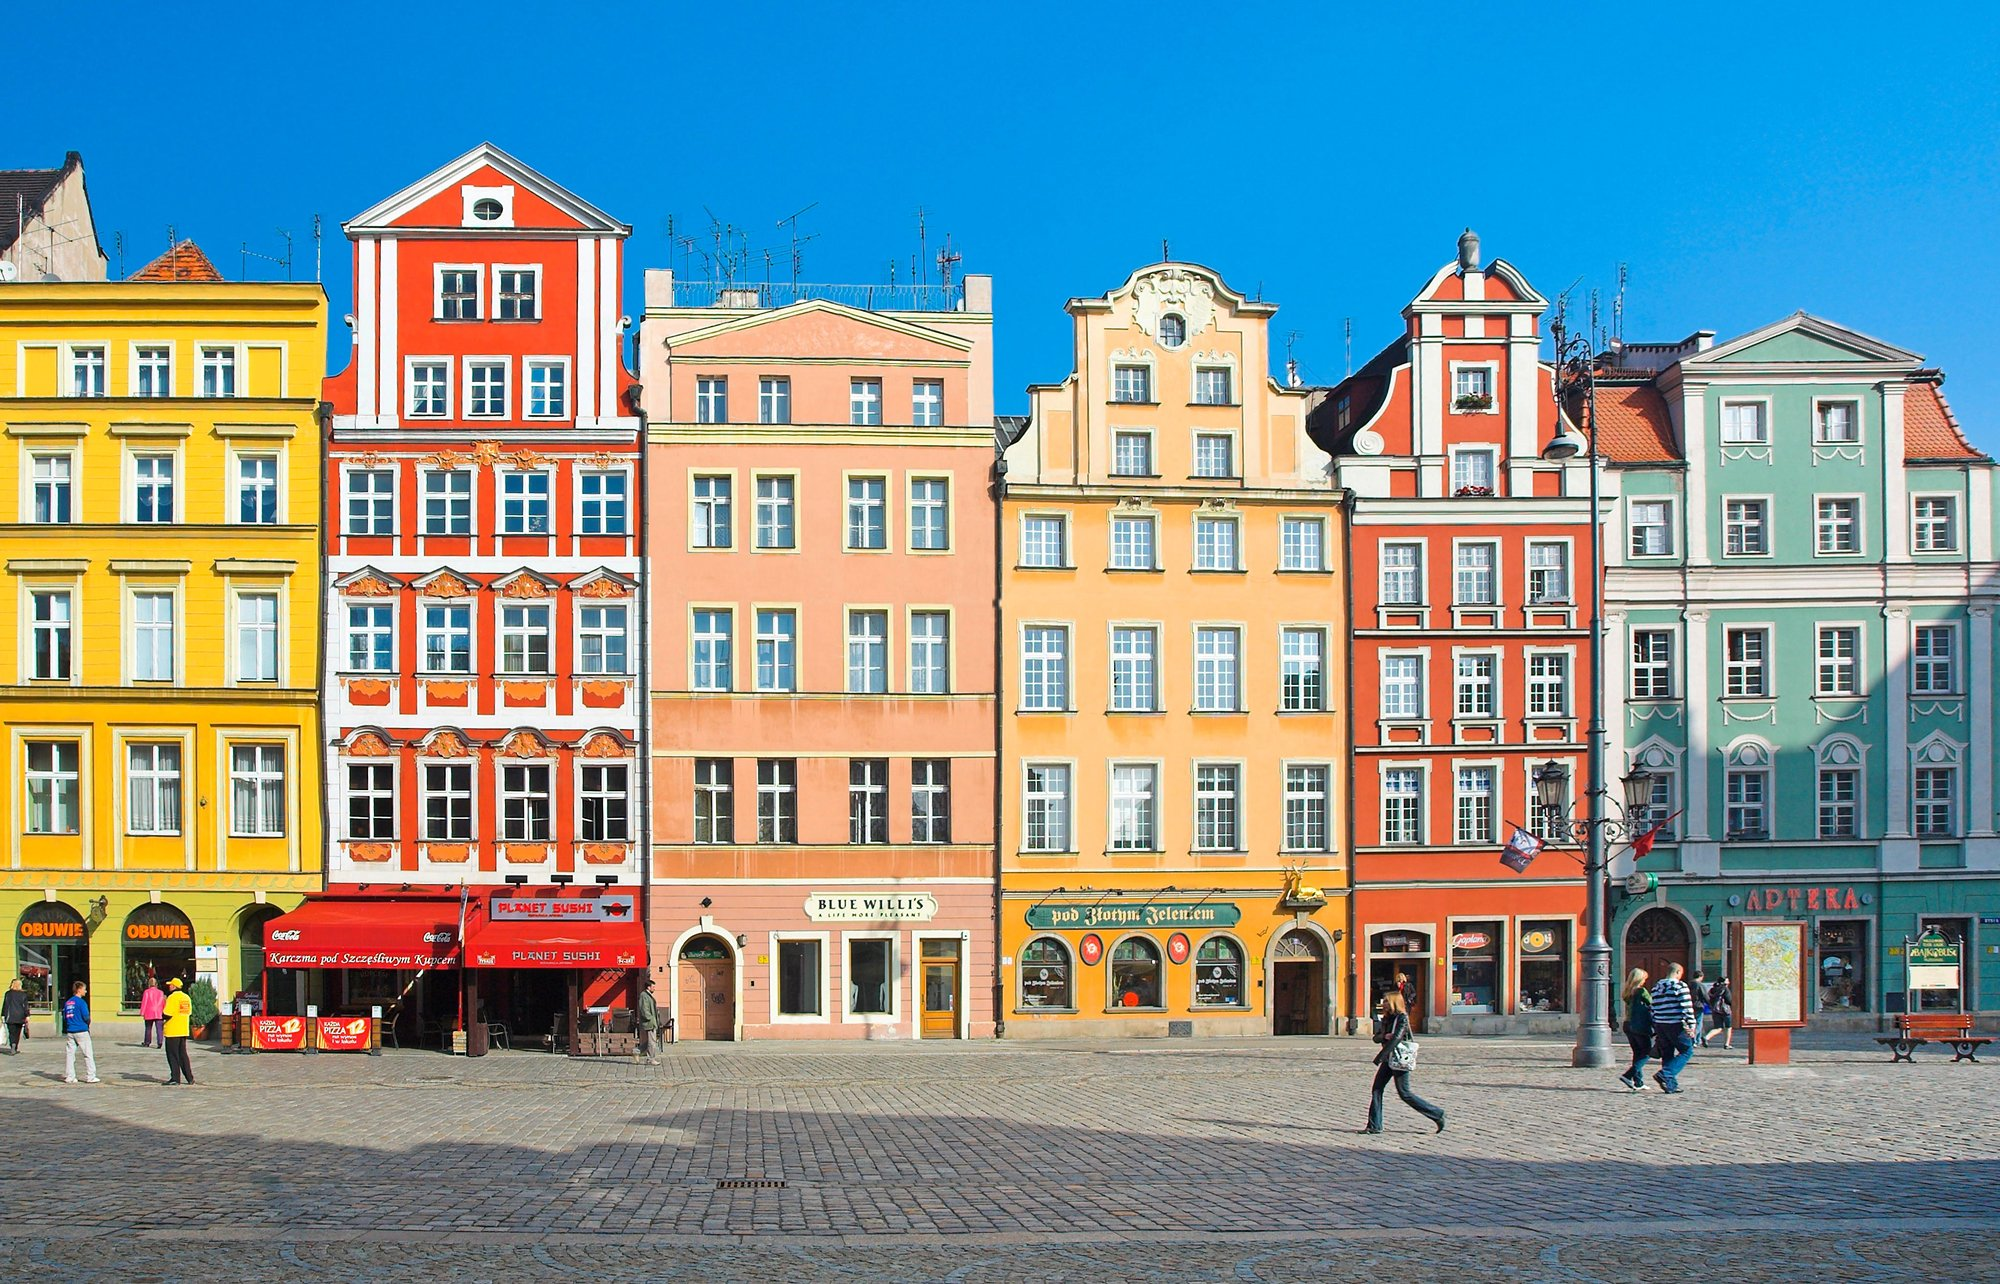 00-holding-wroclaw-poland-travel-guide.jpg